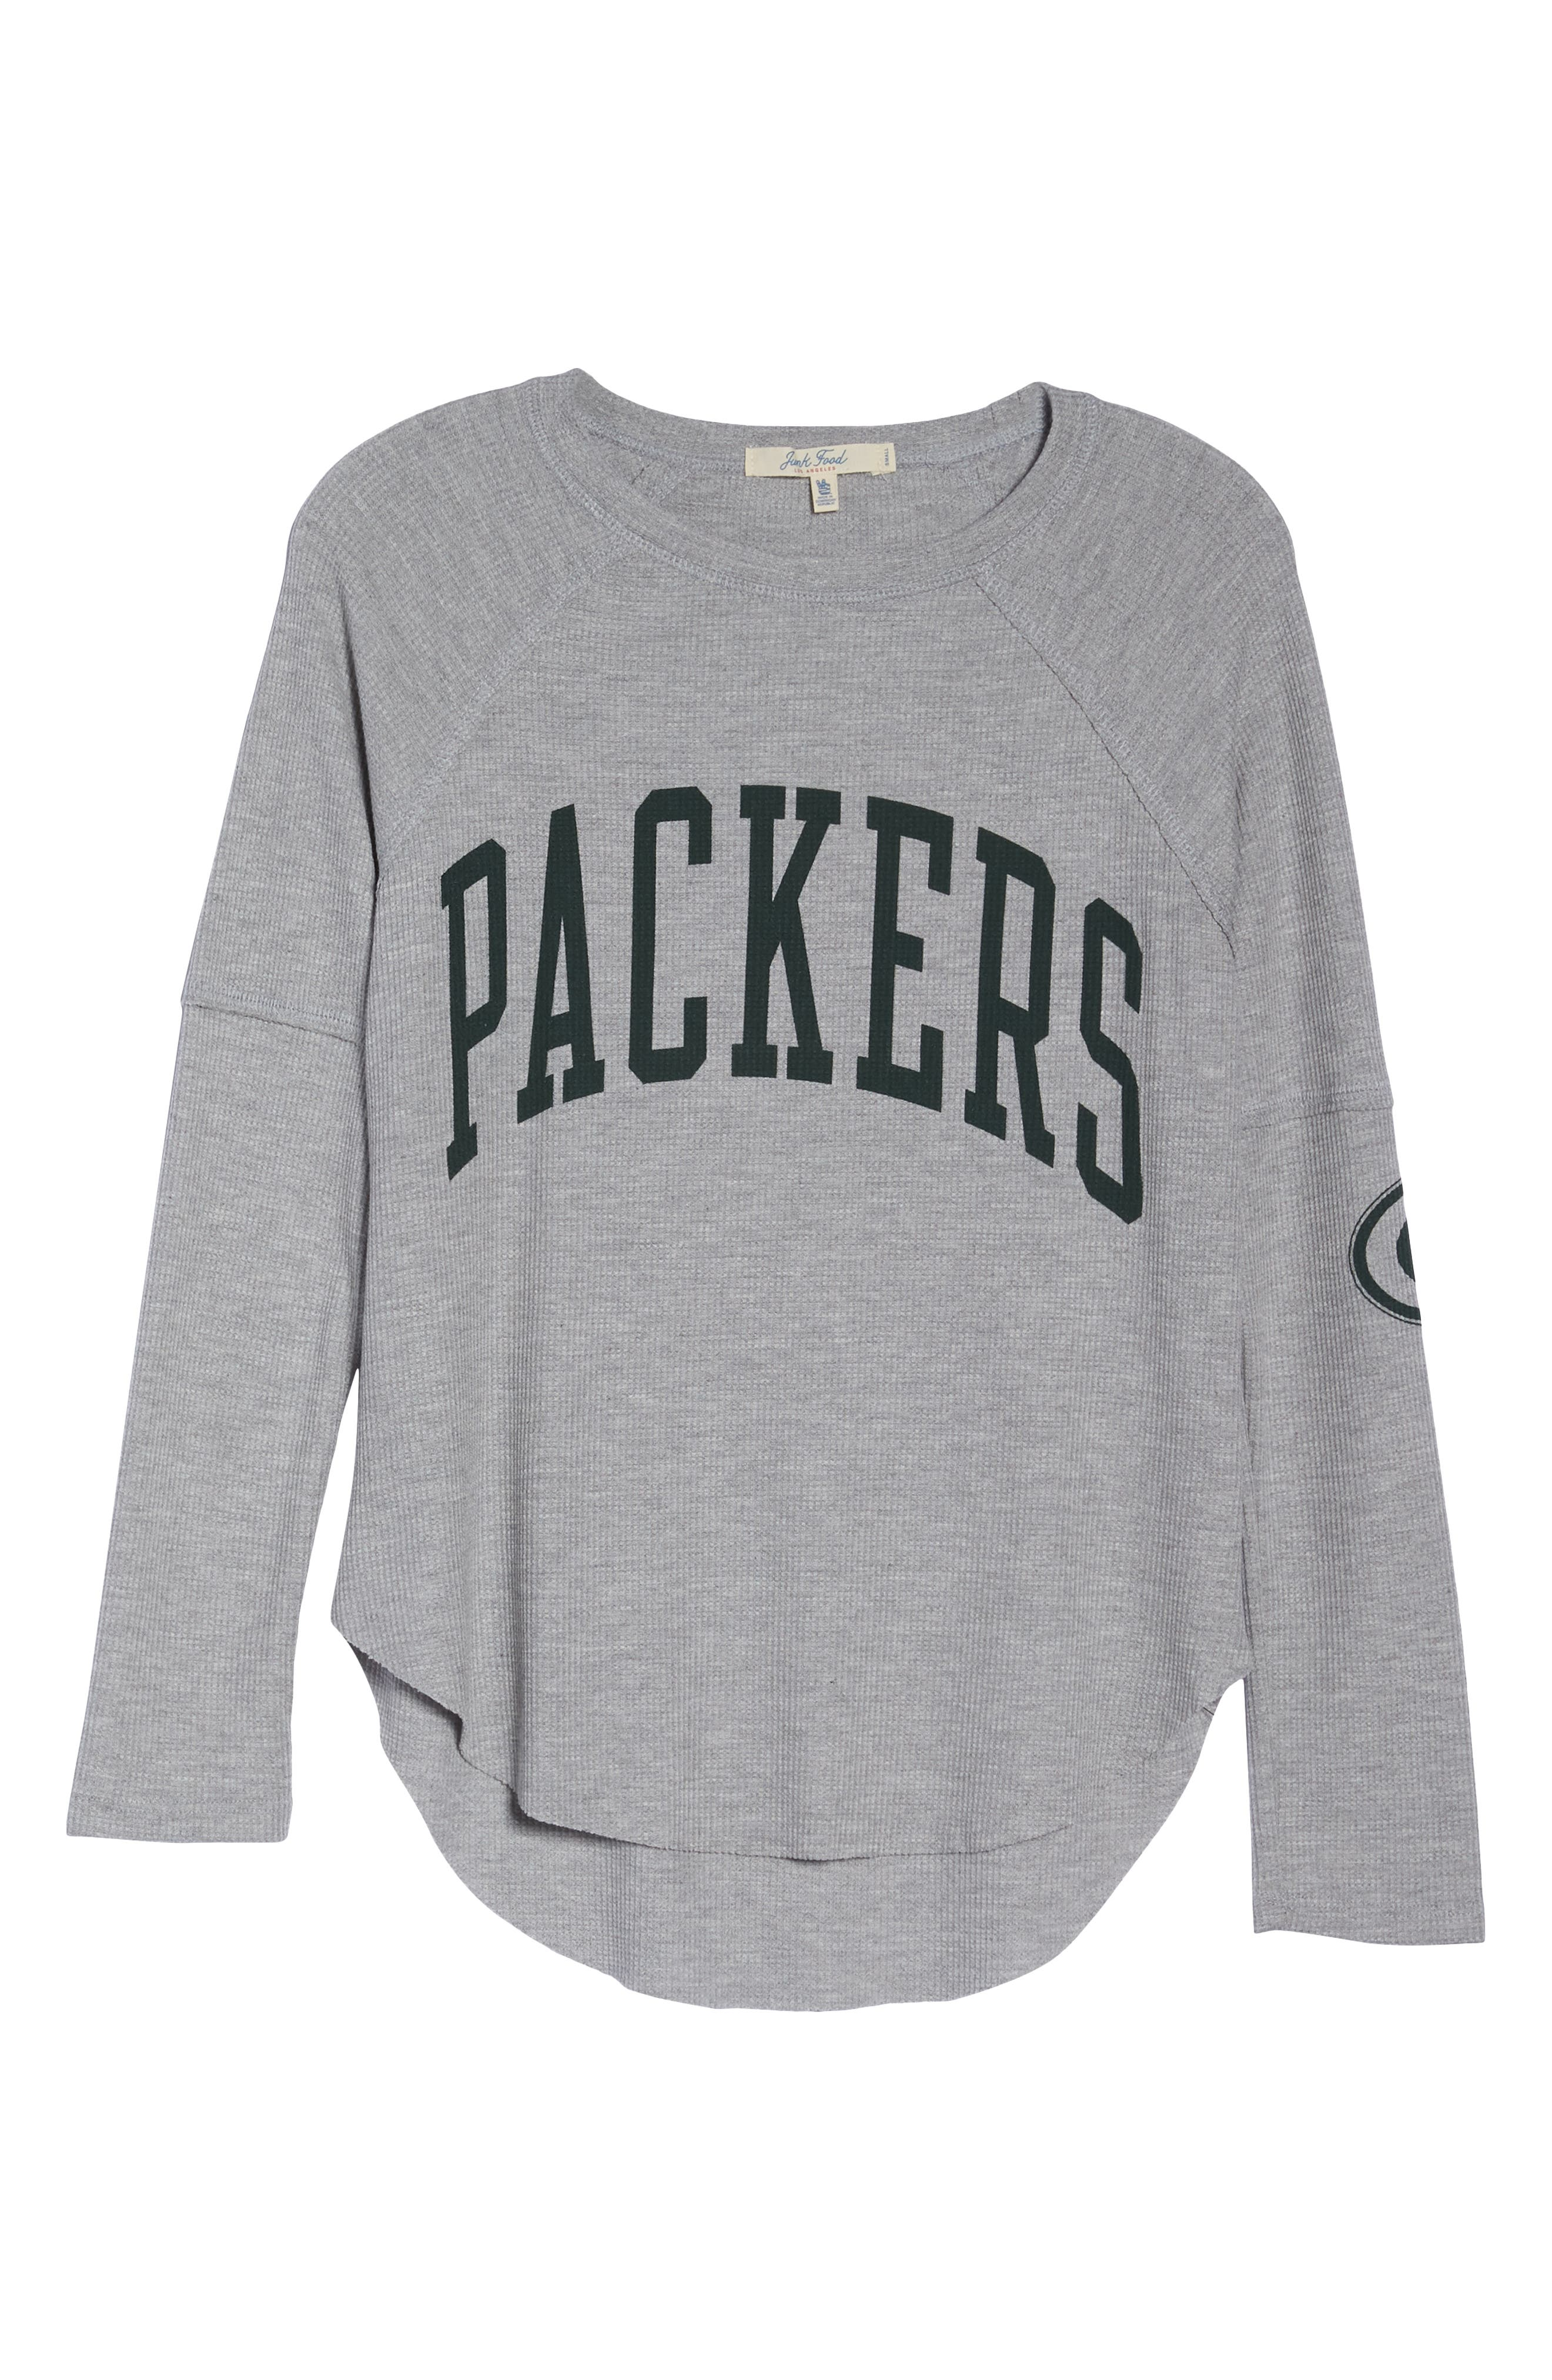 NFL Thermal Tee,                             Alternate thumbnail 6, color,                             020